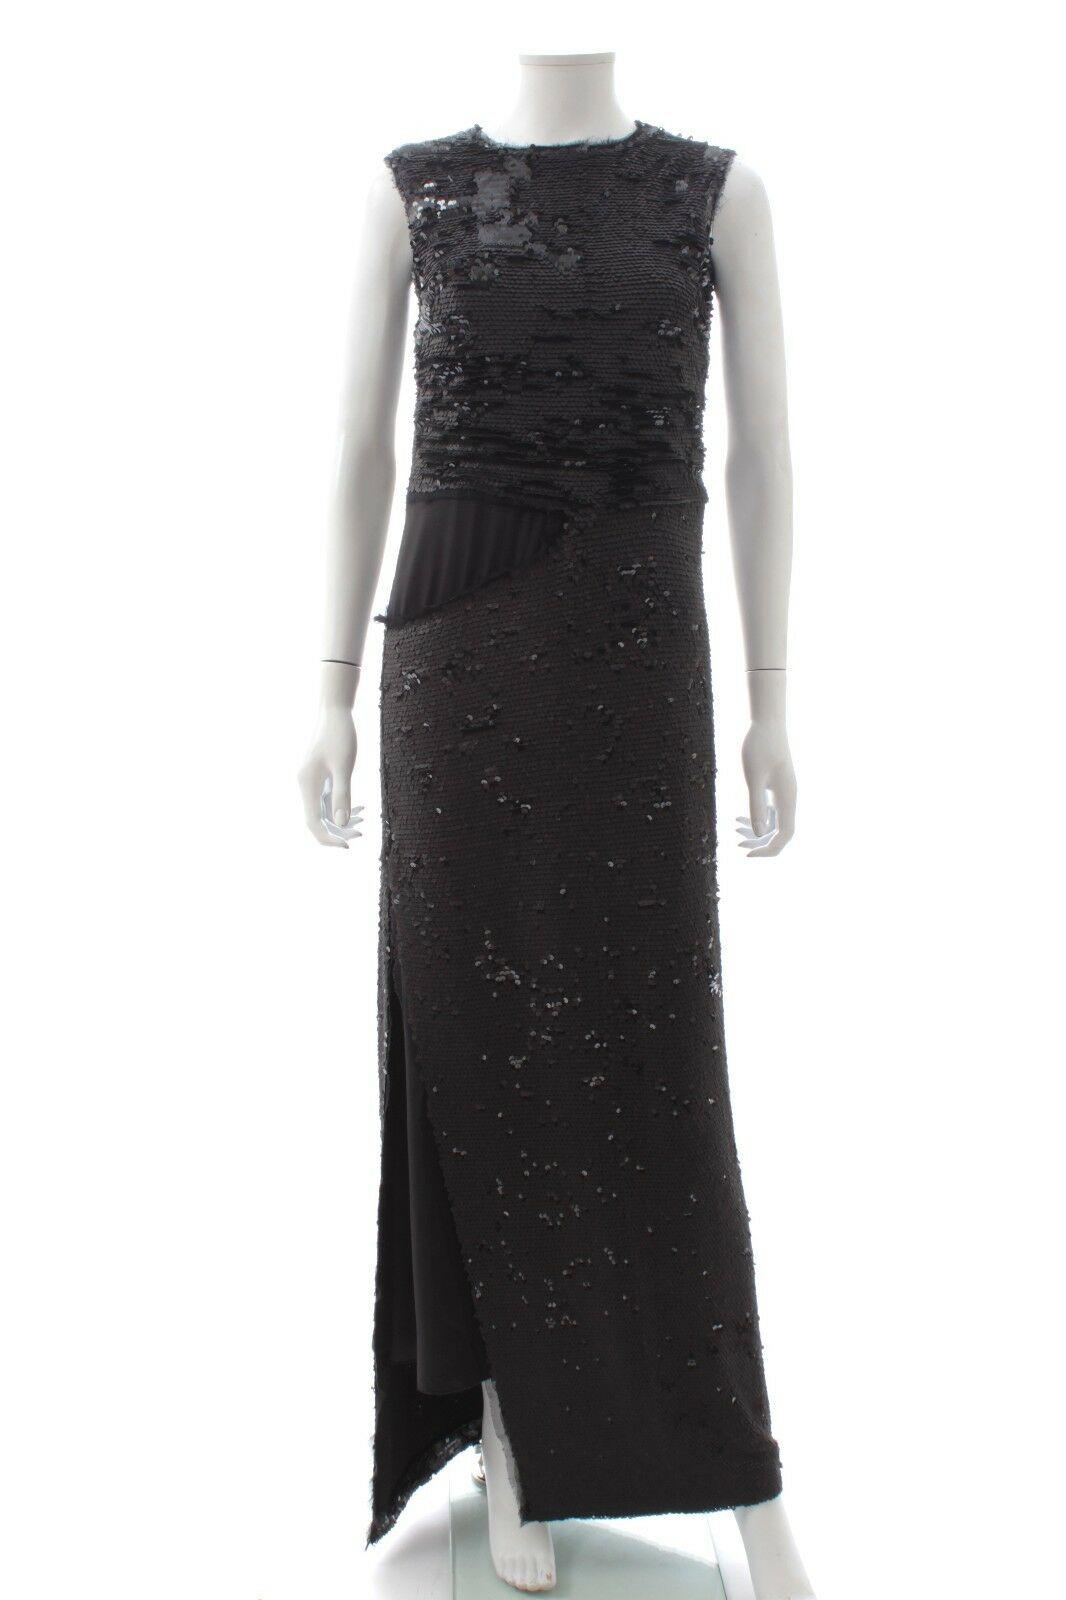 Maison Margiela Sequin Embellished Gown / Black Metallic / RRP: £3,295.00